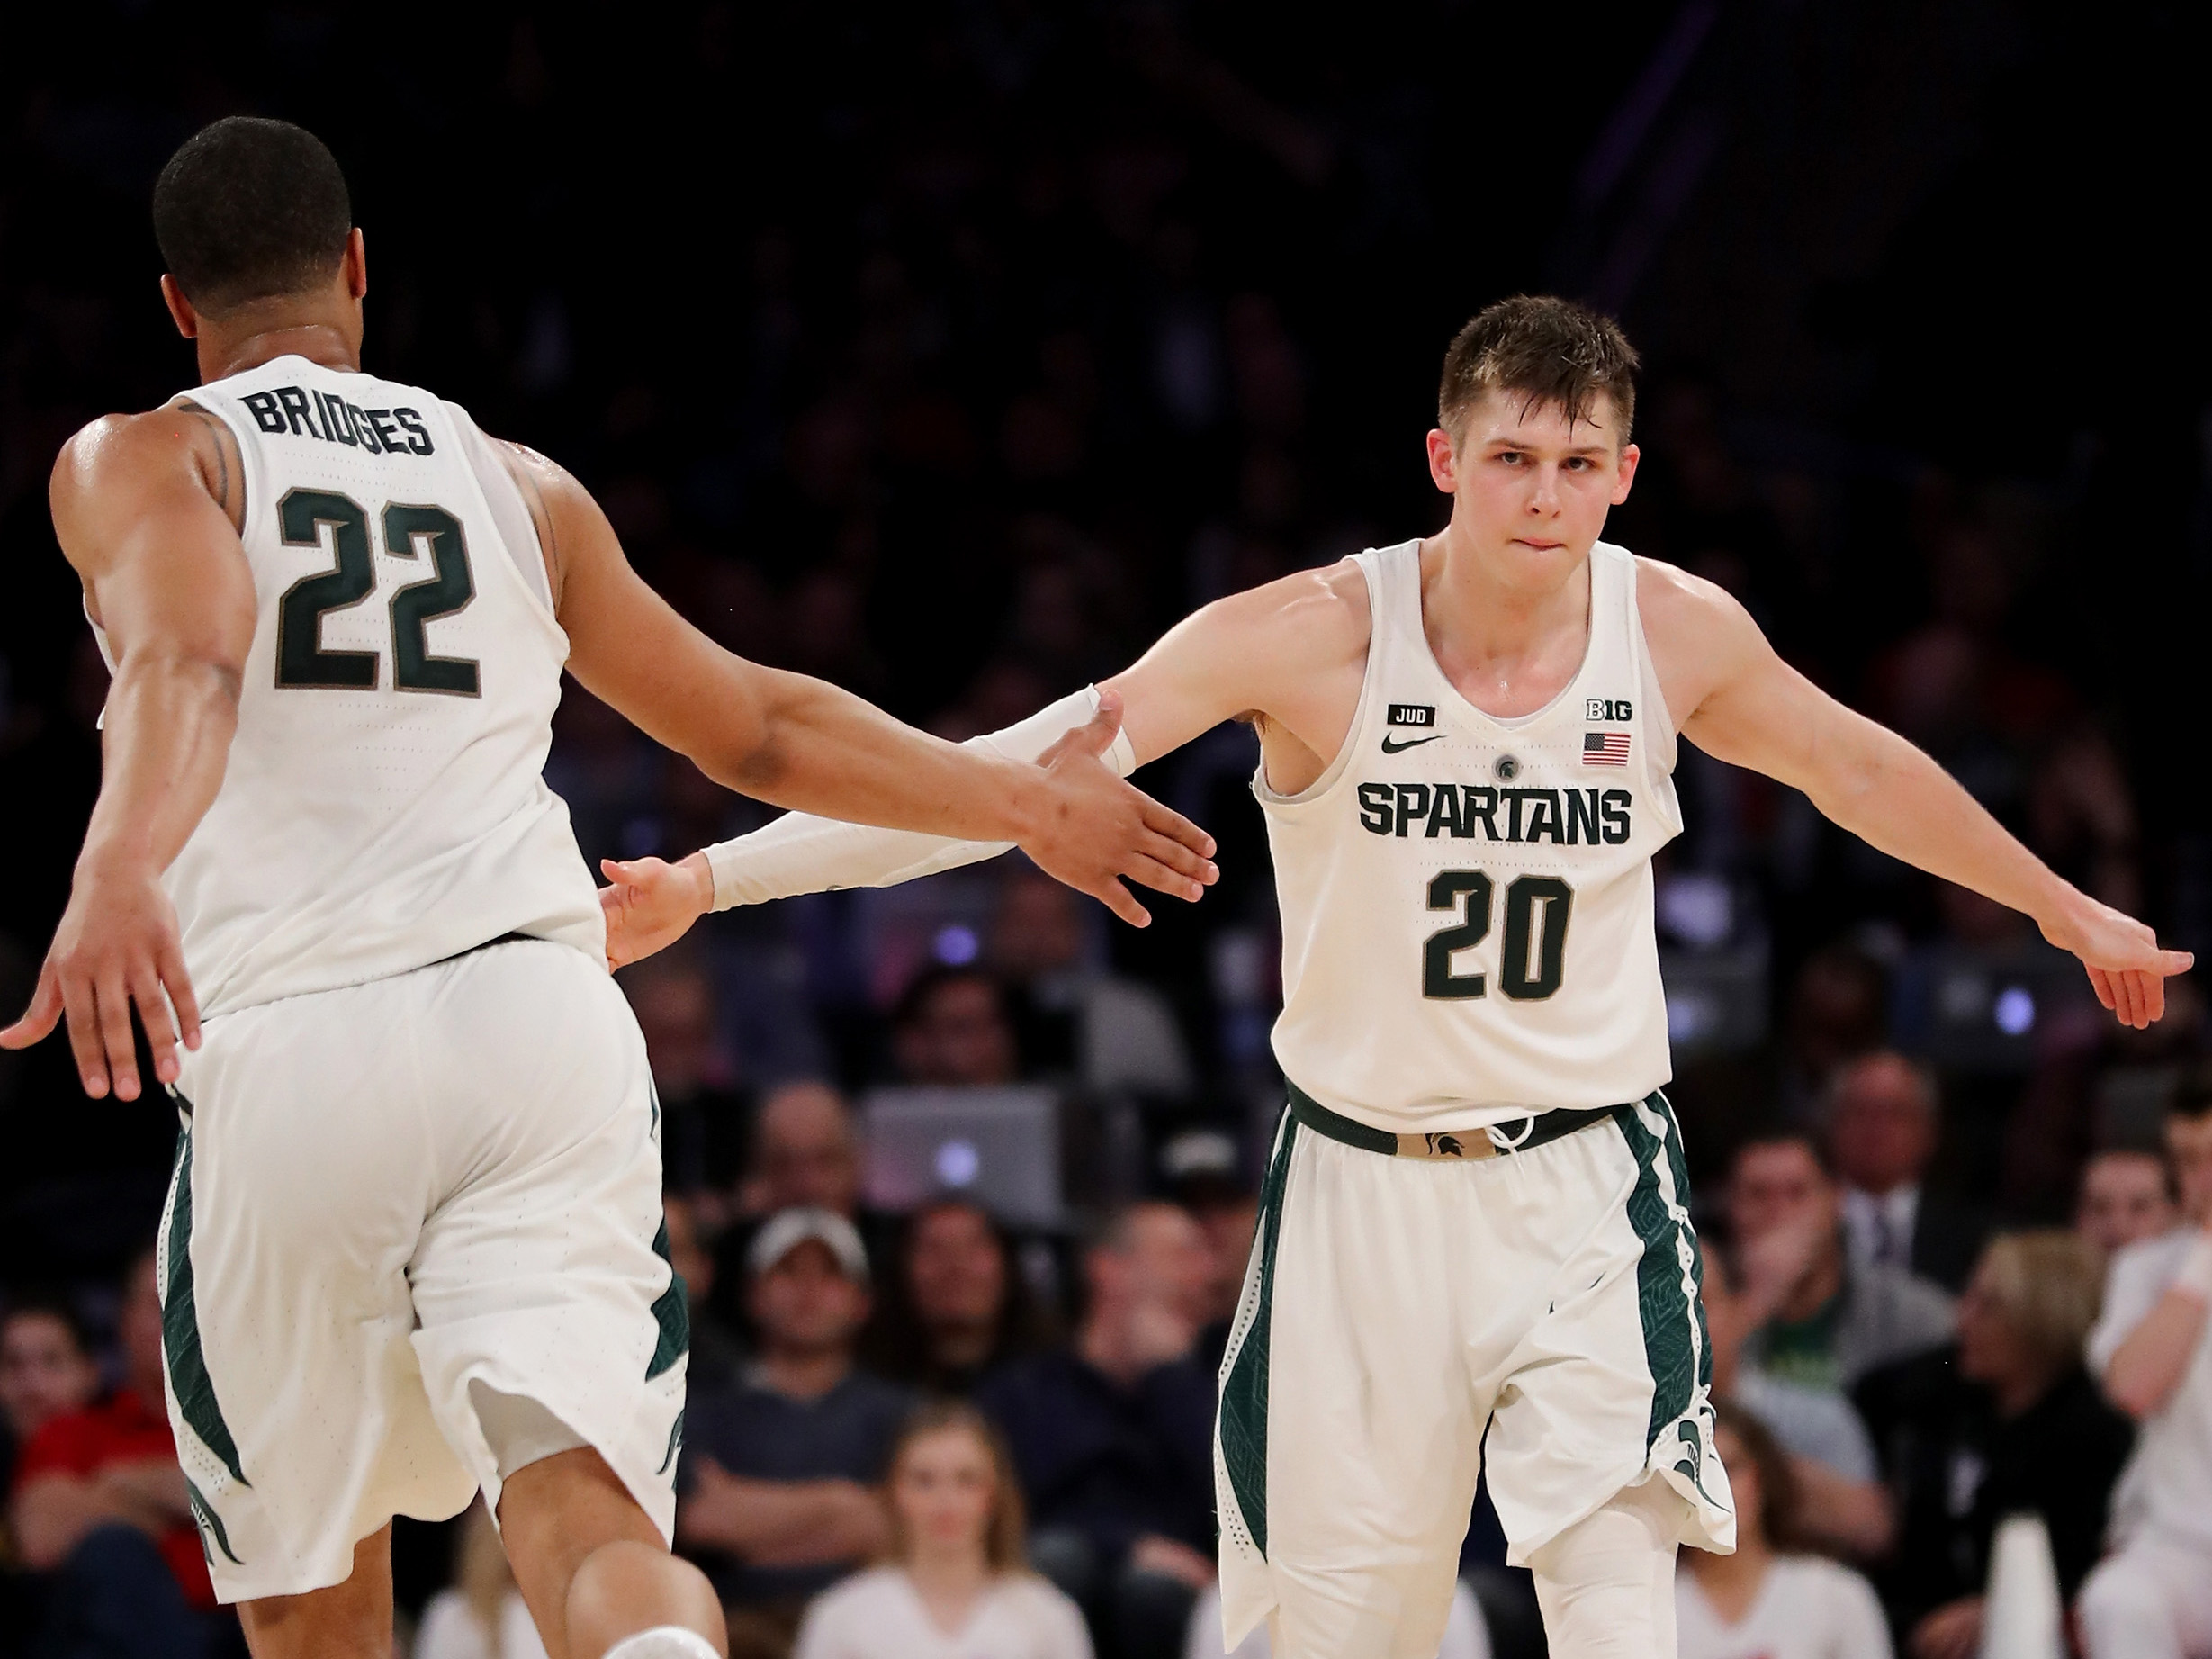 Big Ten Basketball Tournament – Quarterfinals